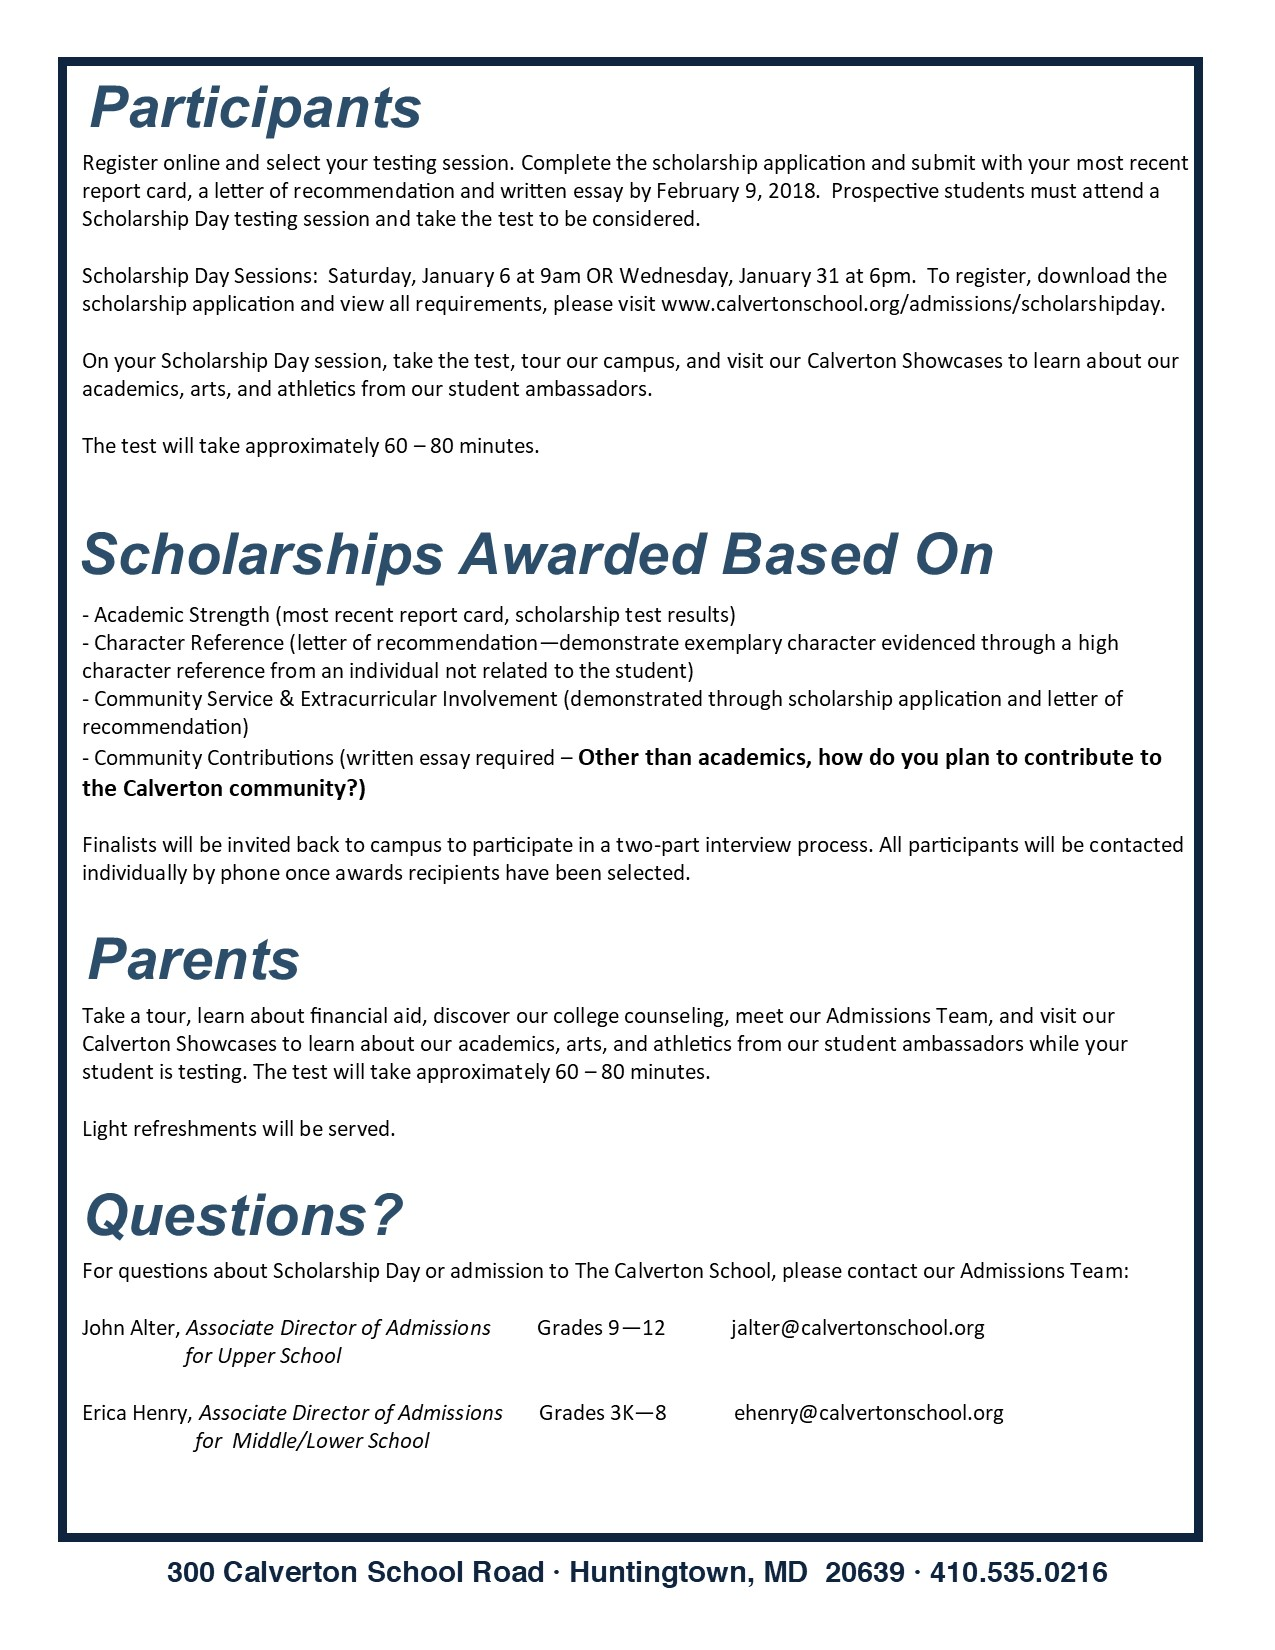 Scholarship day calverton school print scholarship day information sheet note january 6th date has been rescheduled to january 20th due to icy road conditions aljukfo Gallery